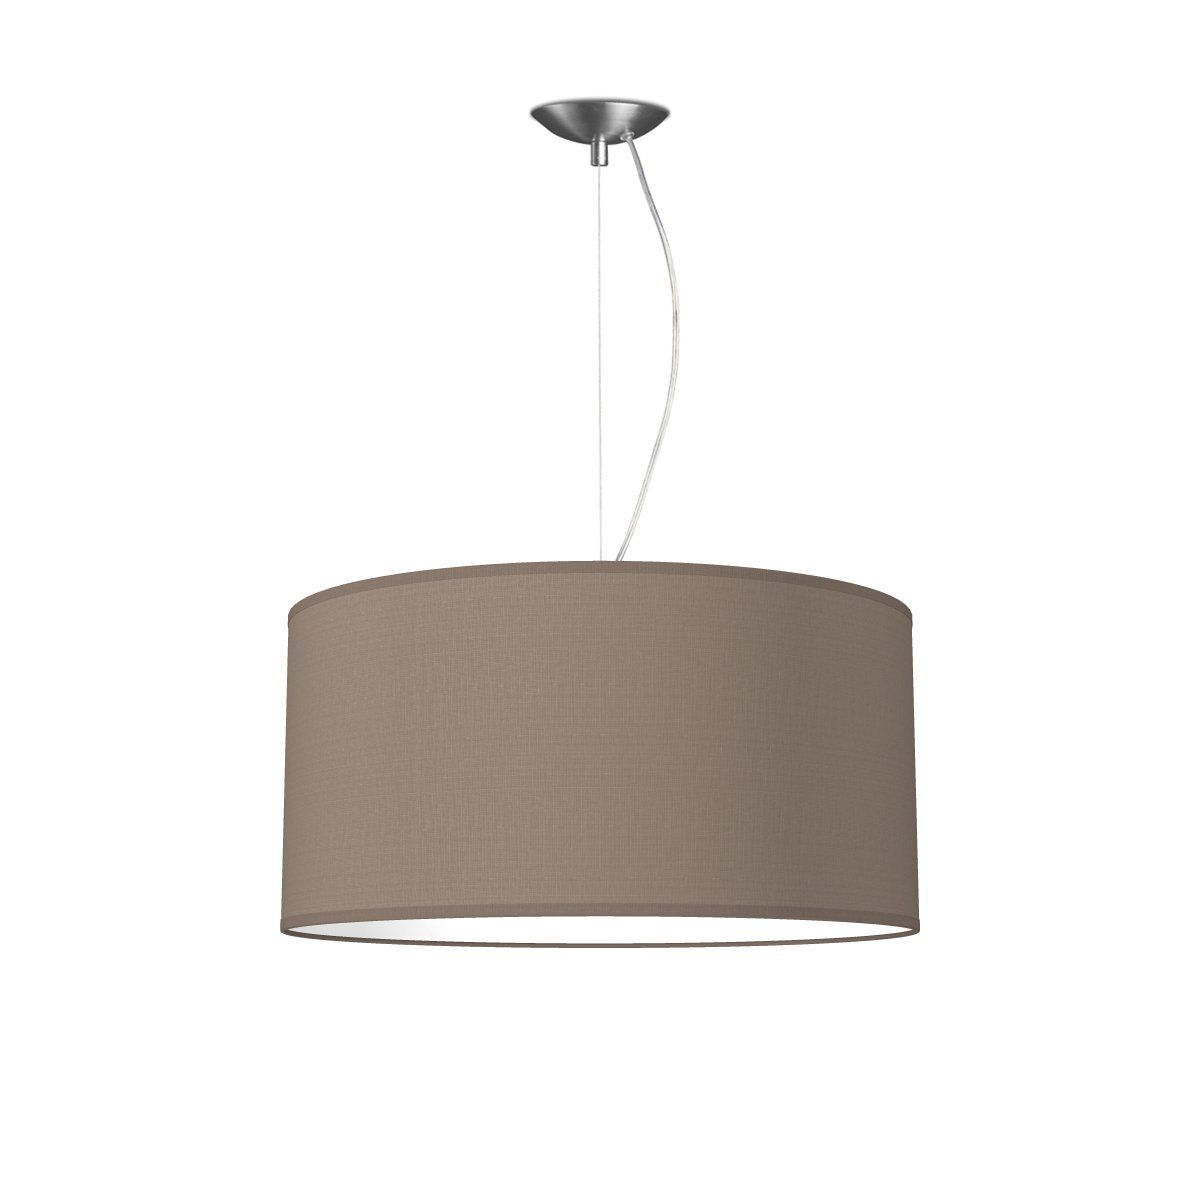 HOME SWEET HOME hanglamp basic deluxe bling Ø 50 cm - Funghi